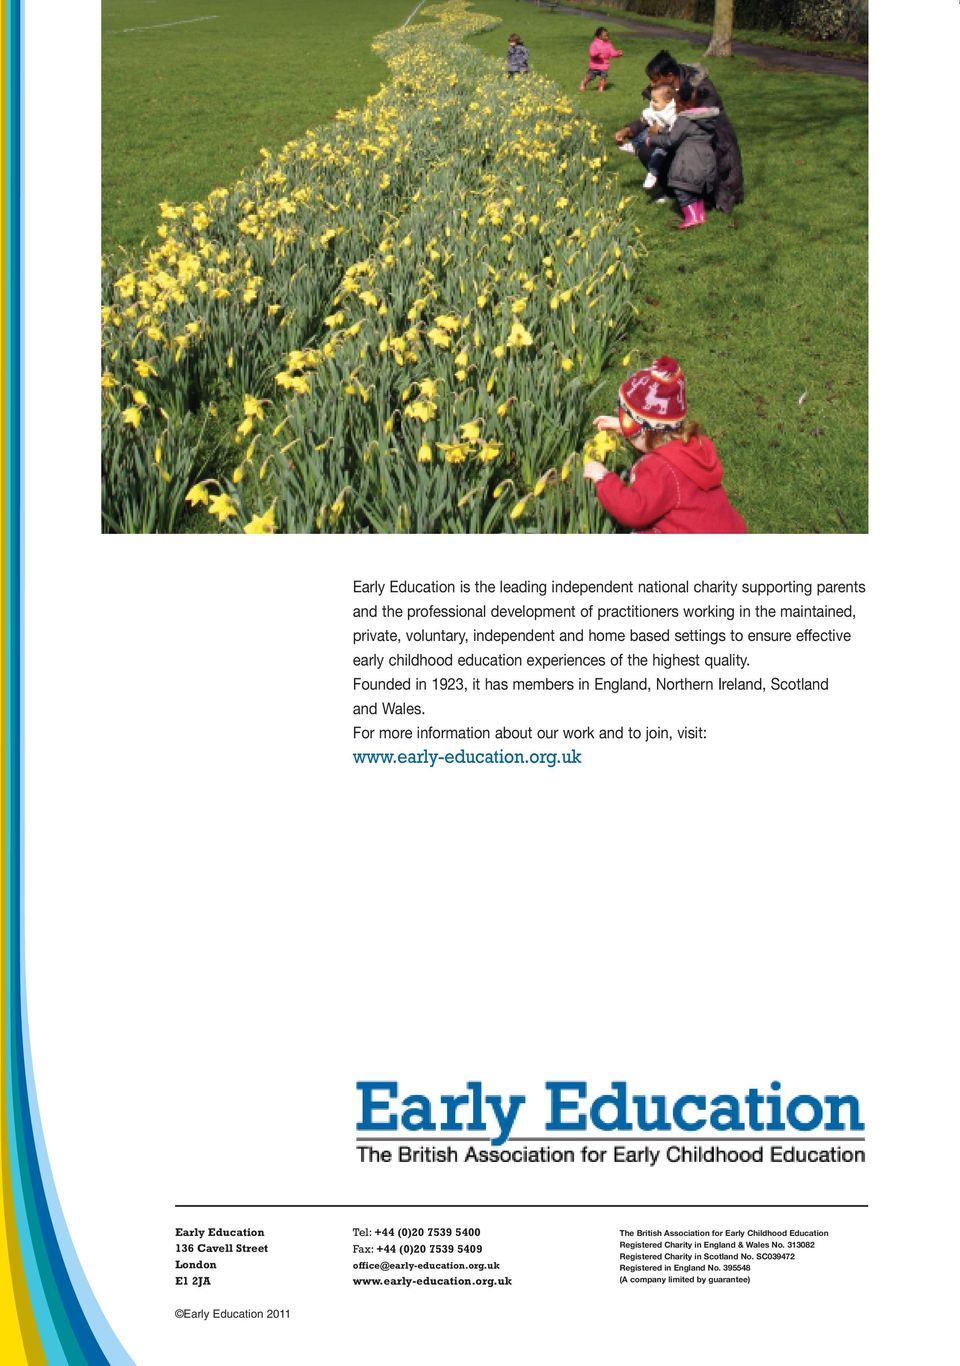 For more information about our work and to join, visit: www.early-education.org.